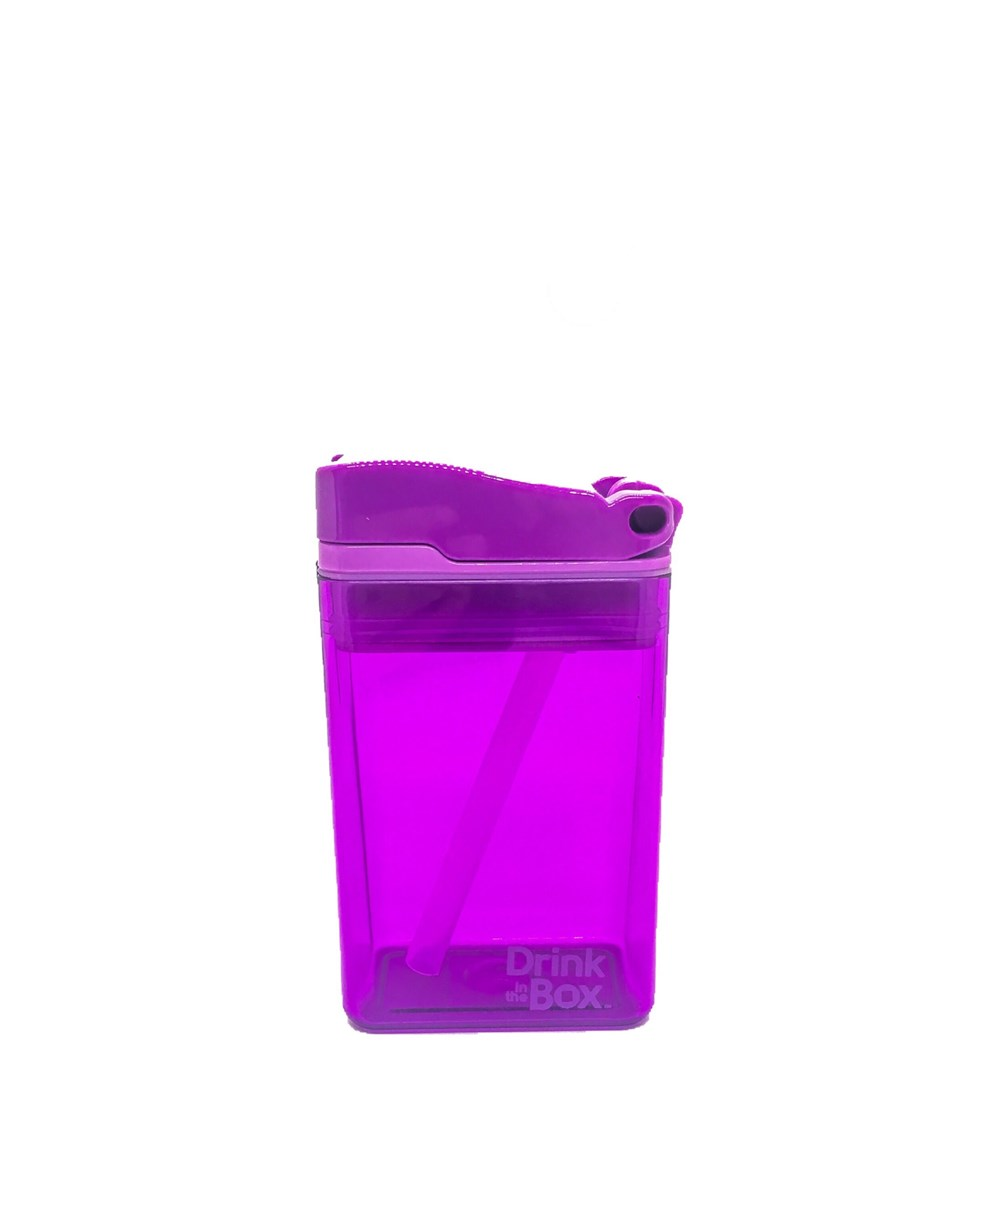 Drink in The Box 8oz / 235mL - Purple